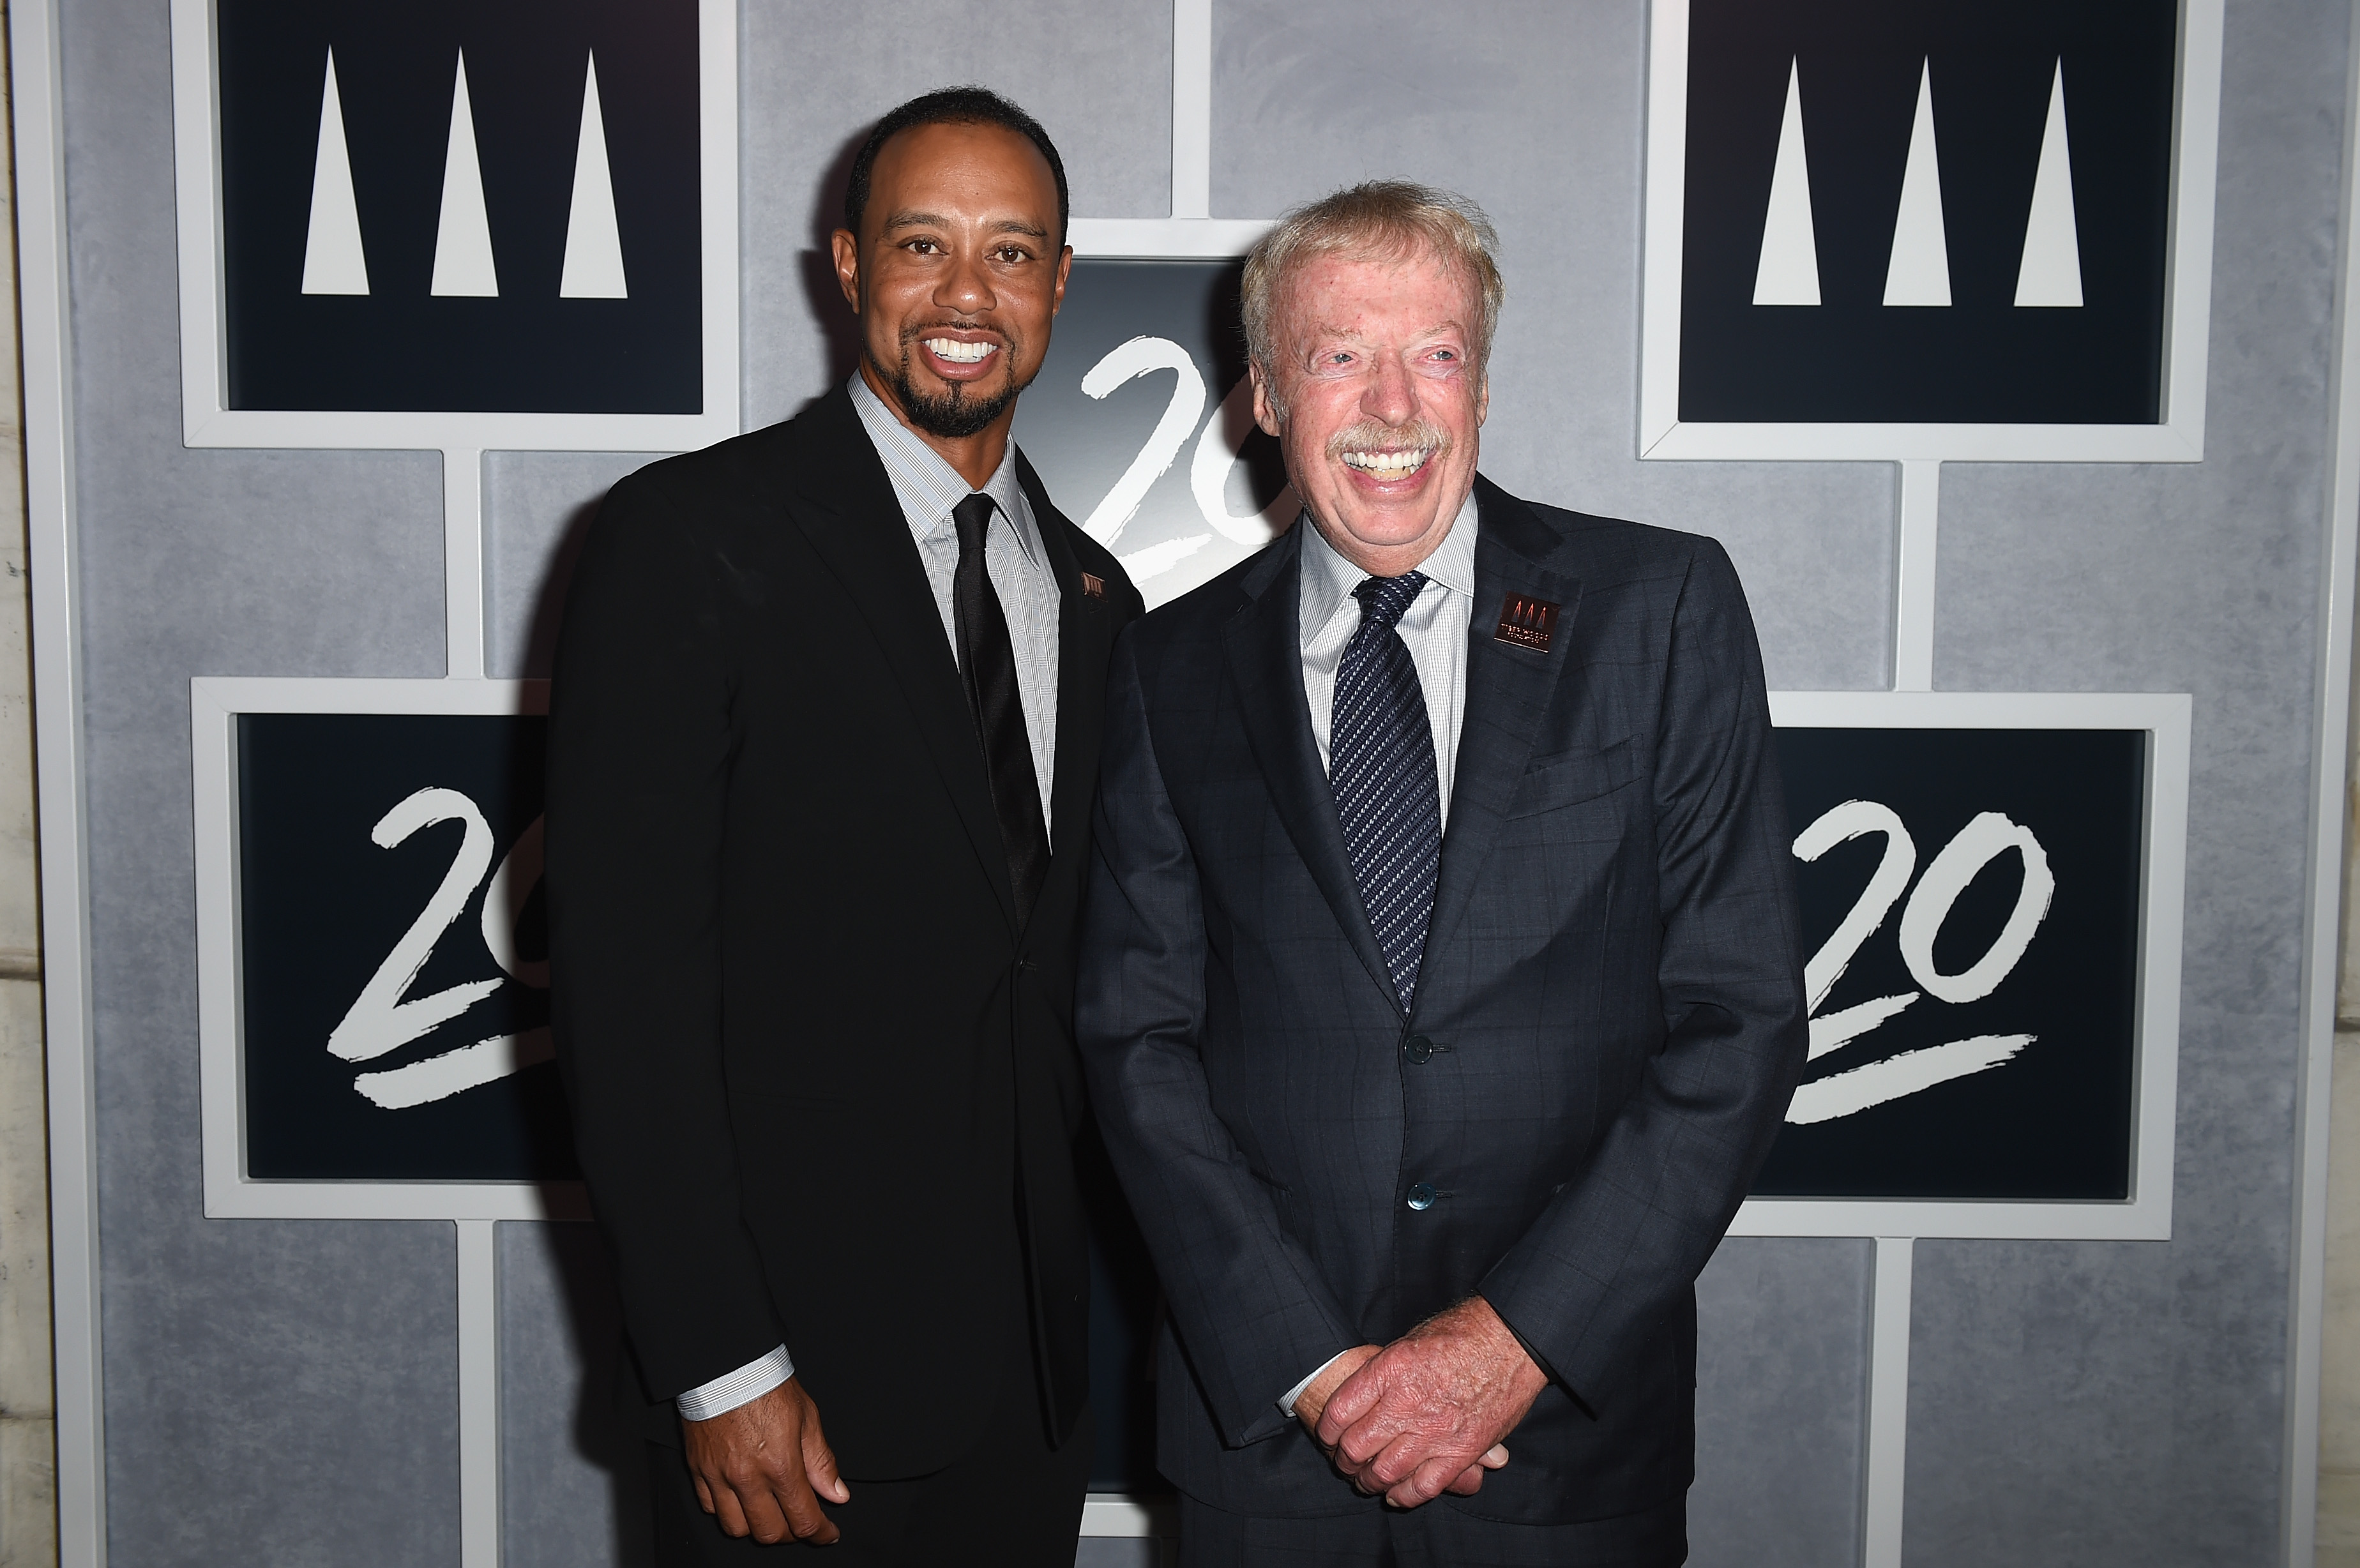 Sabueso jugar Servicio  Nike's Phil Knight says company's recruitment of Tiger Woods began three  years before he turned pro | This is the Loop | Golf Digest